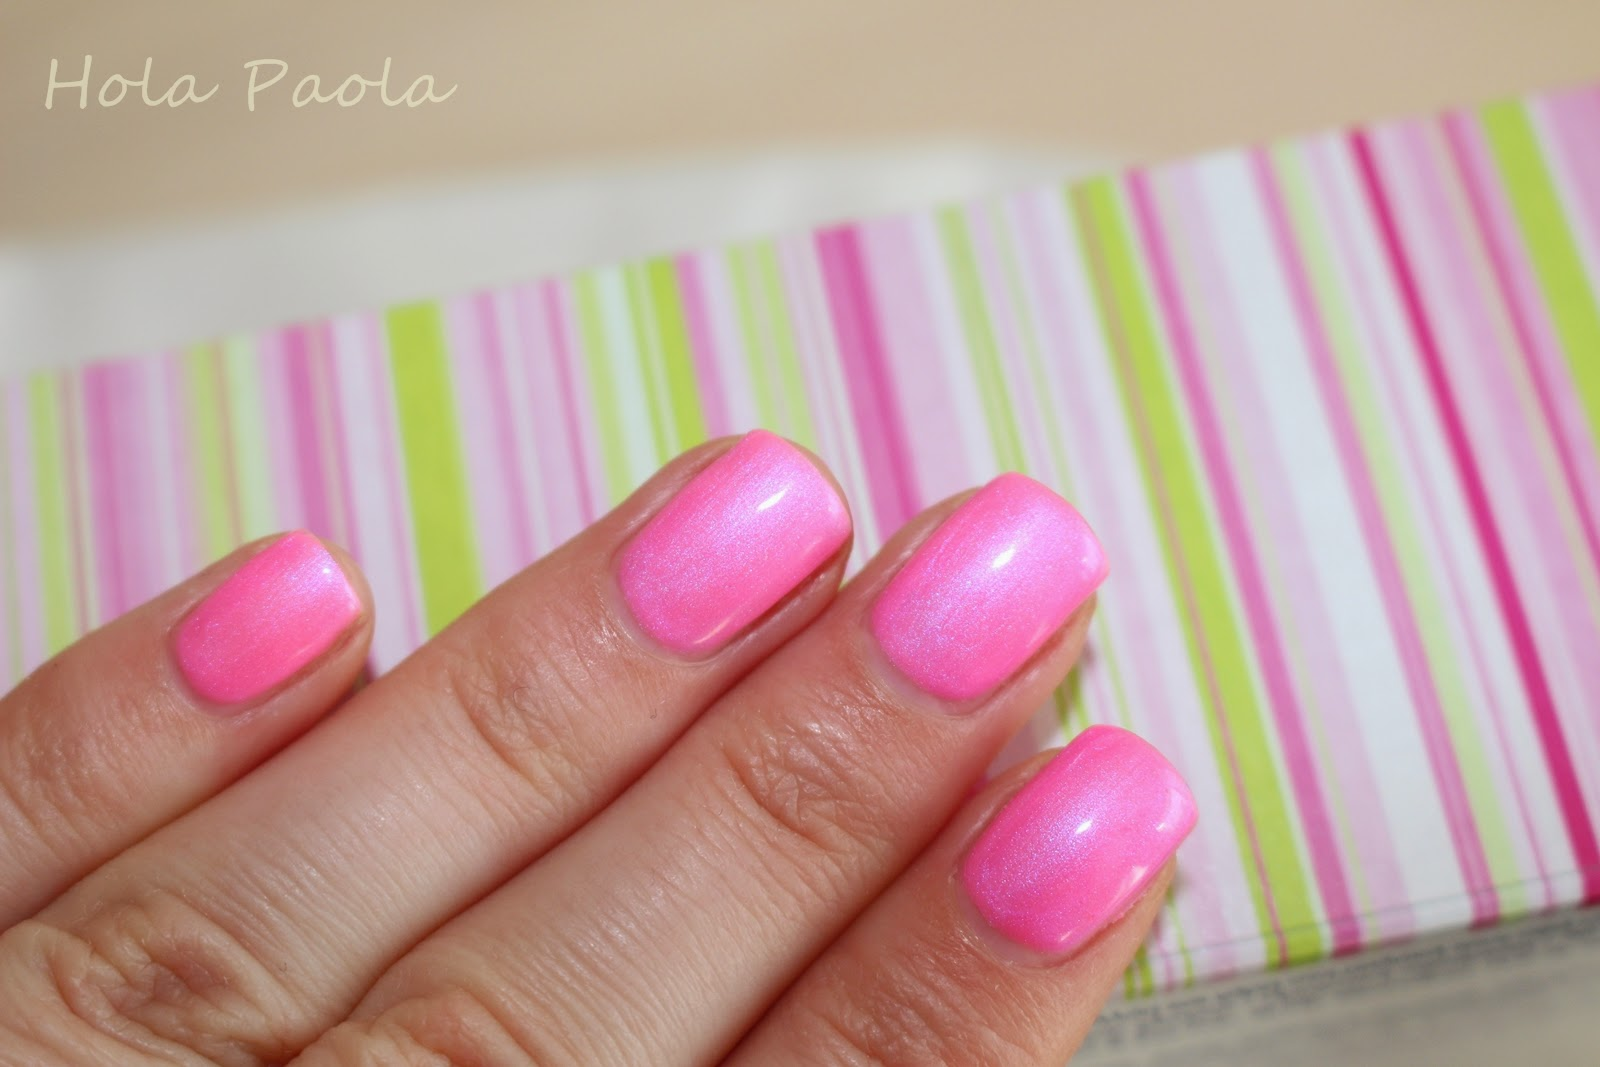 Semilac 118 Alice in Wonderland nowy kolor new colors gel nails pink sumer hybrydy lato neony różowy paznokcie żelowe naturalne perłowy neon róż hola paola blog